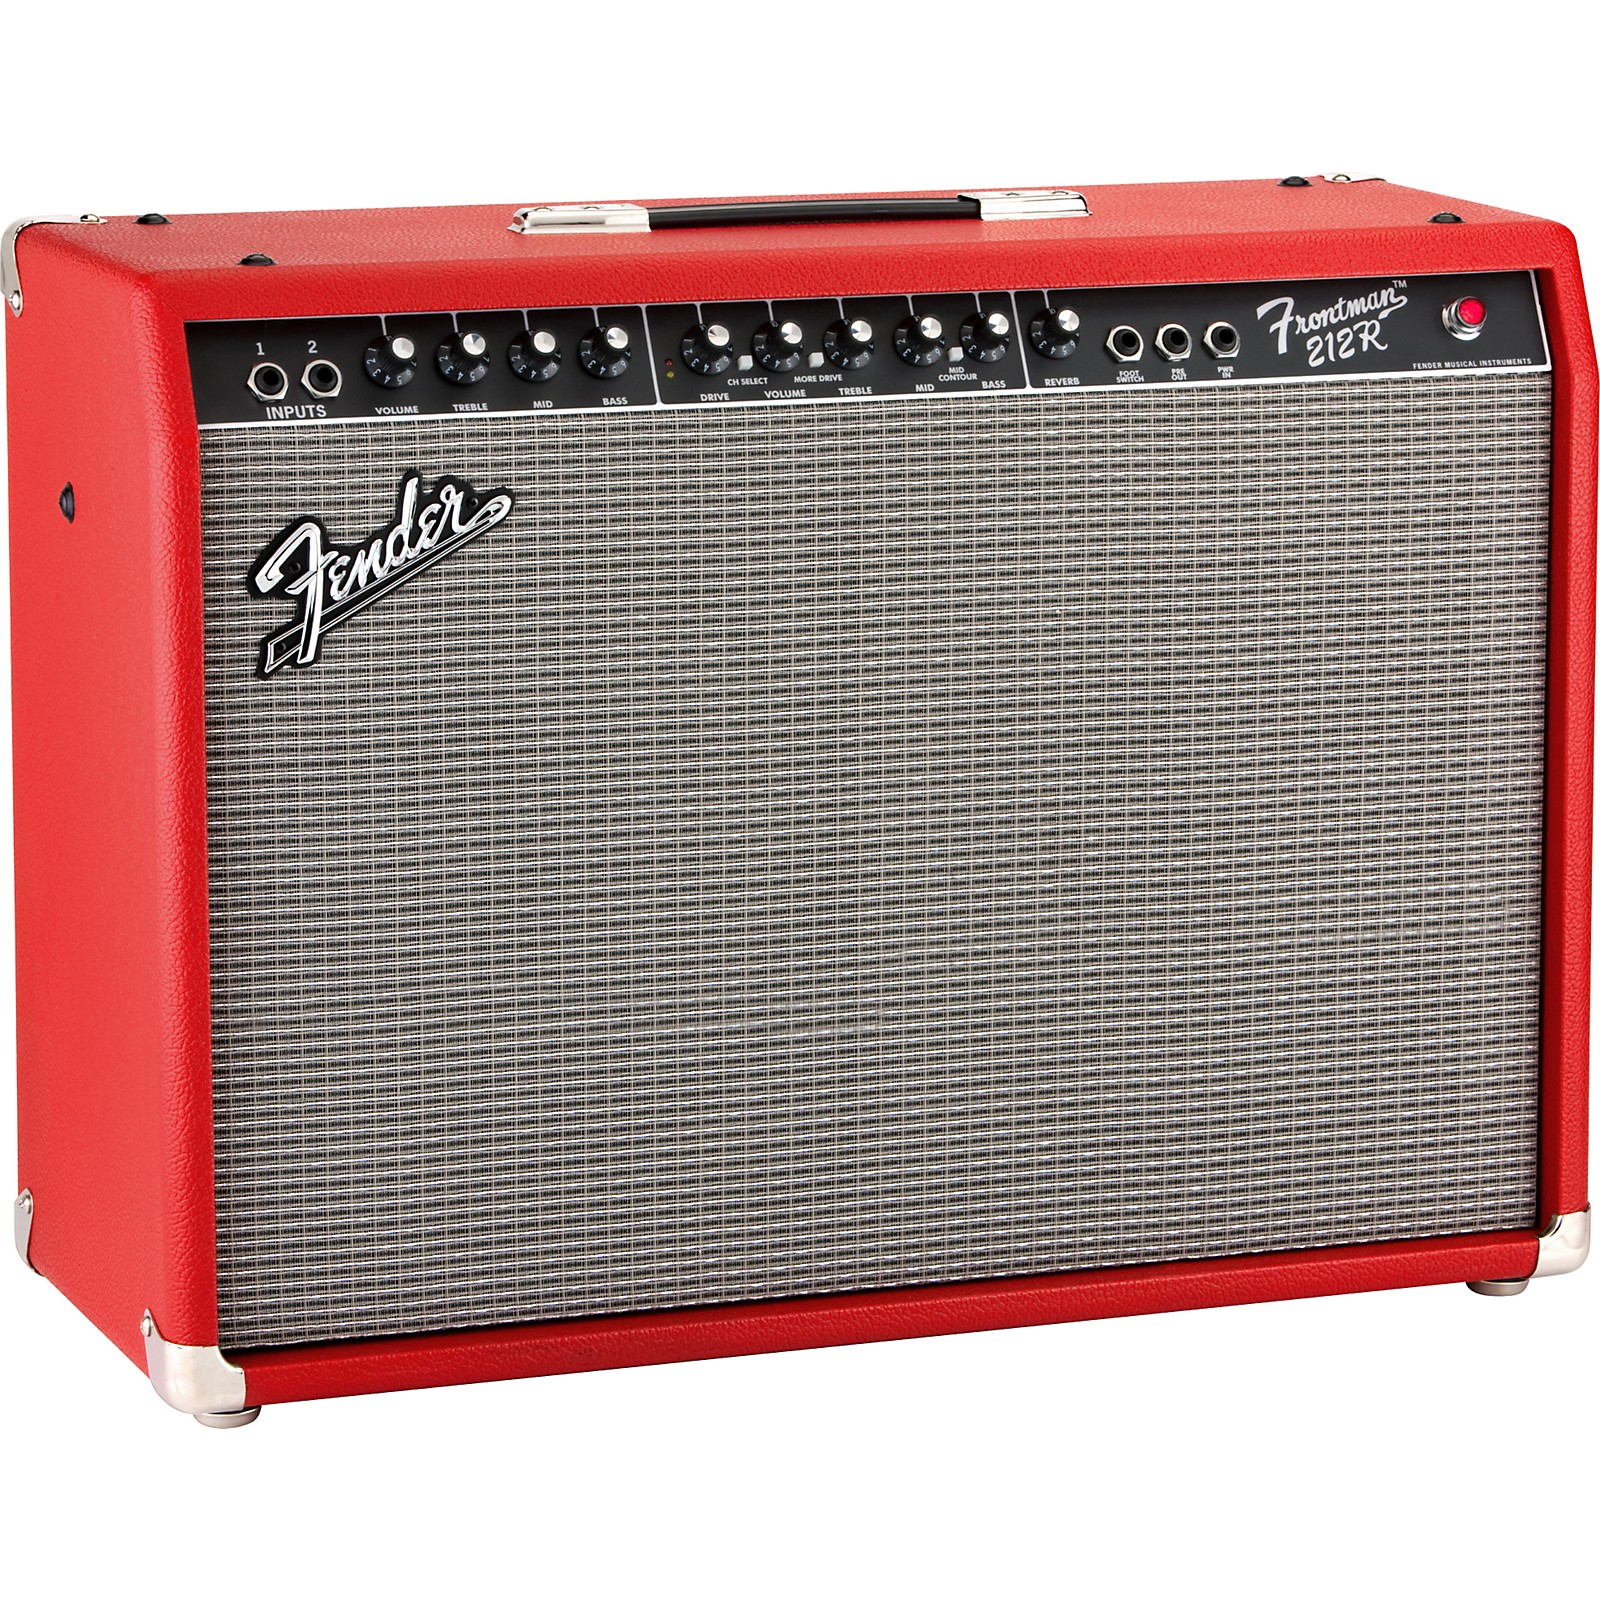 Fender Frontman 212R FSR Limited Edition Red 100W 2x12 Guitar Combo Amp